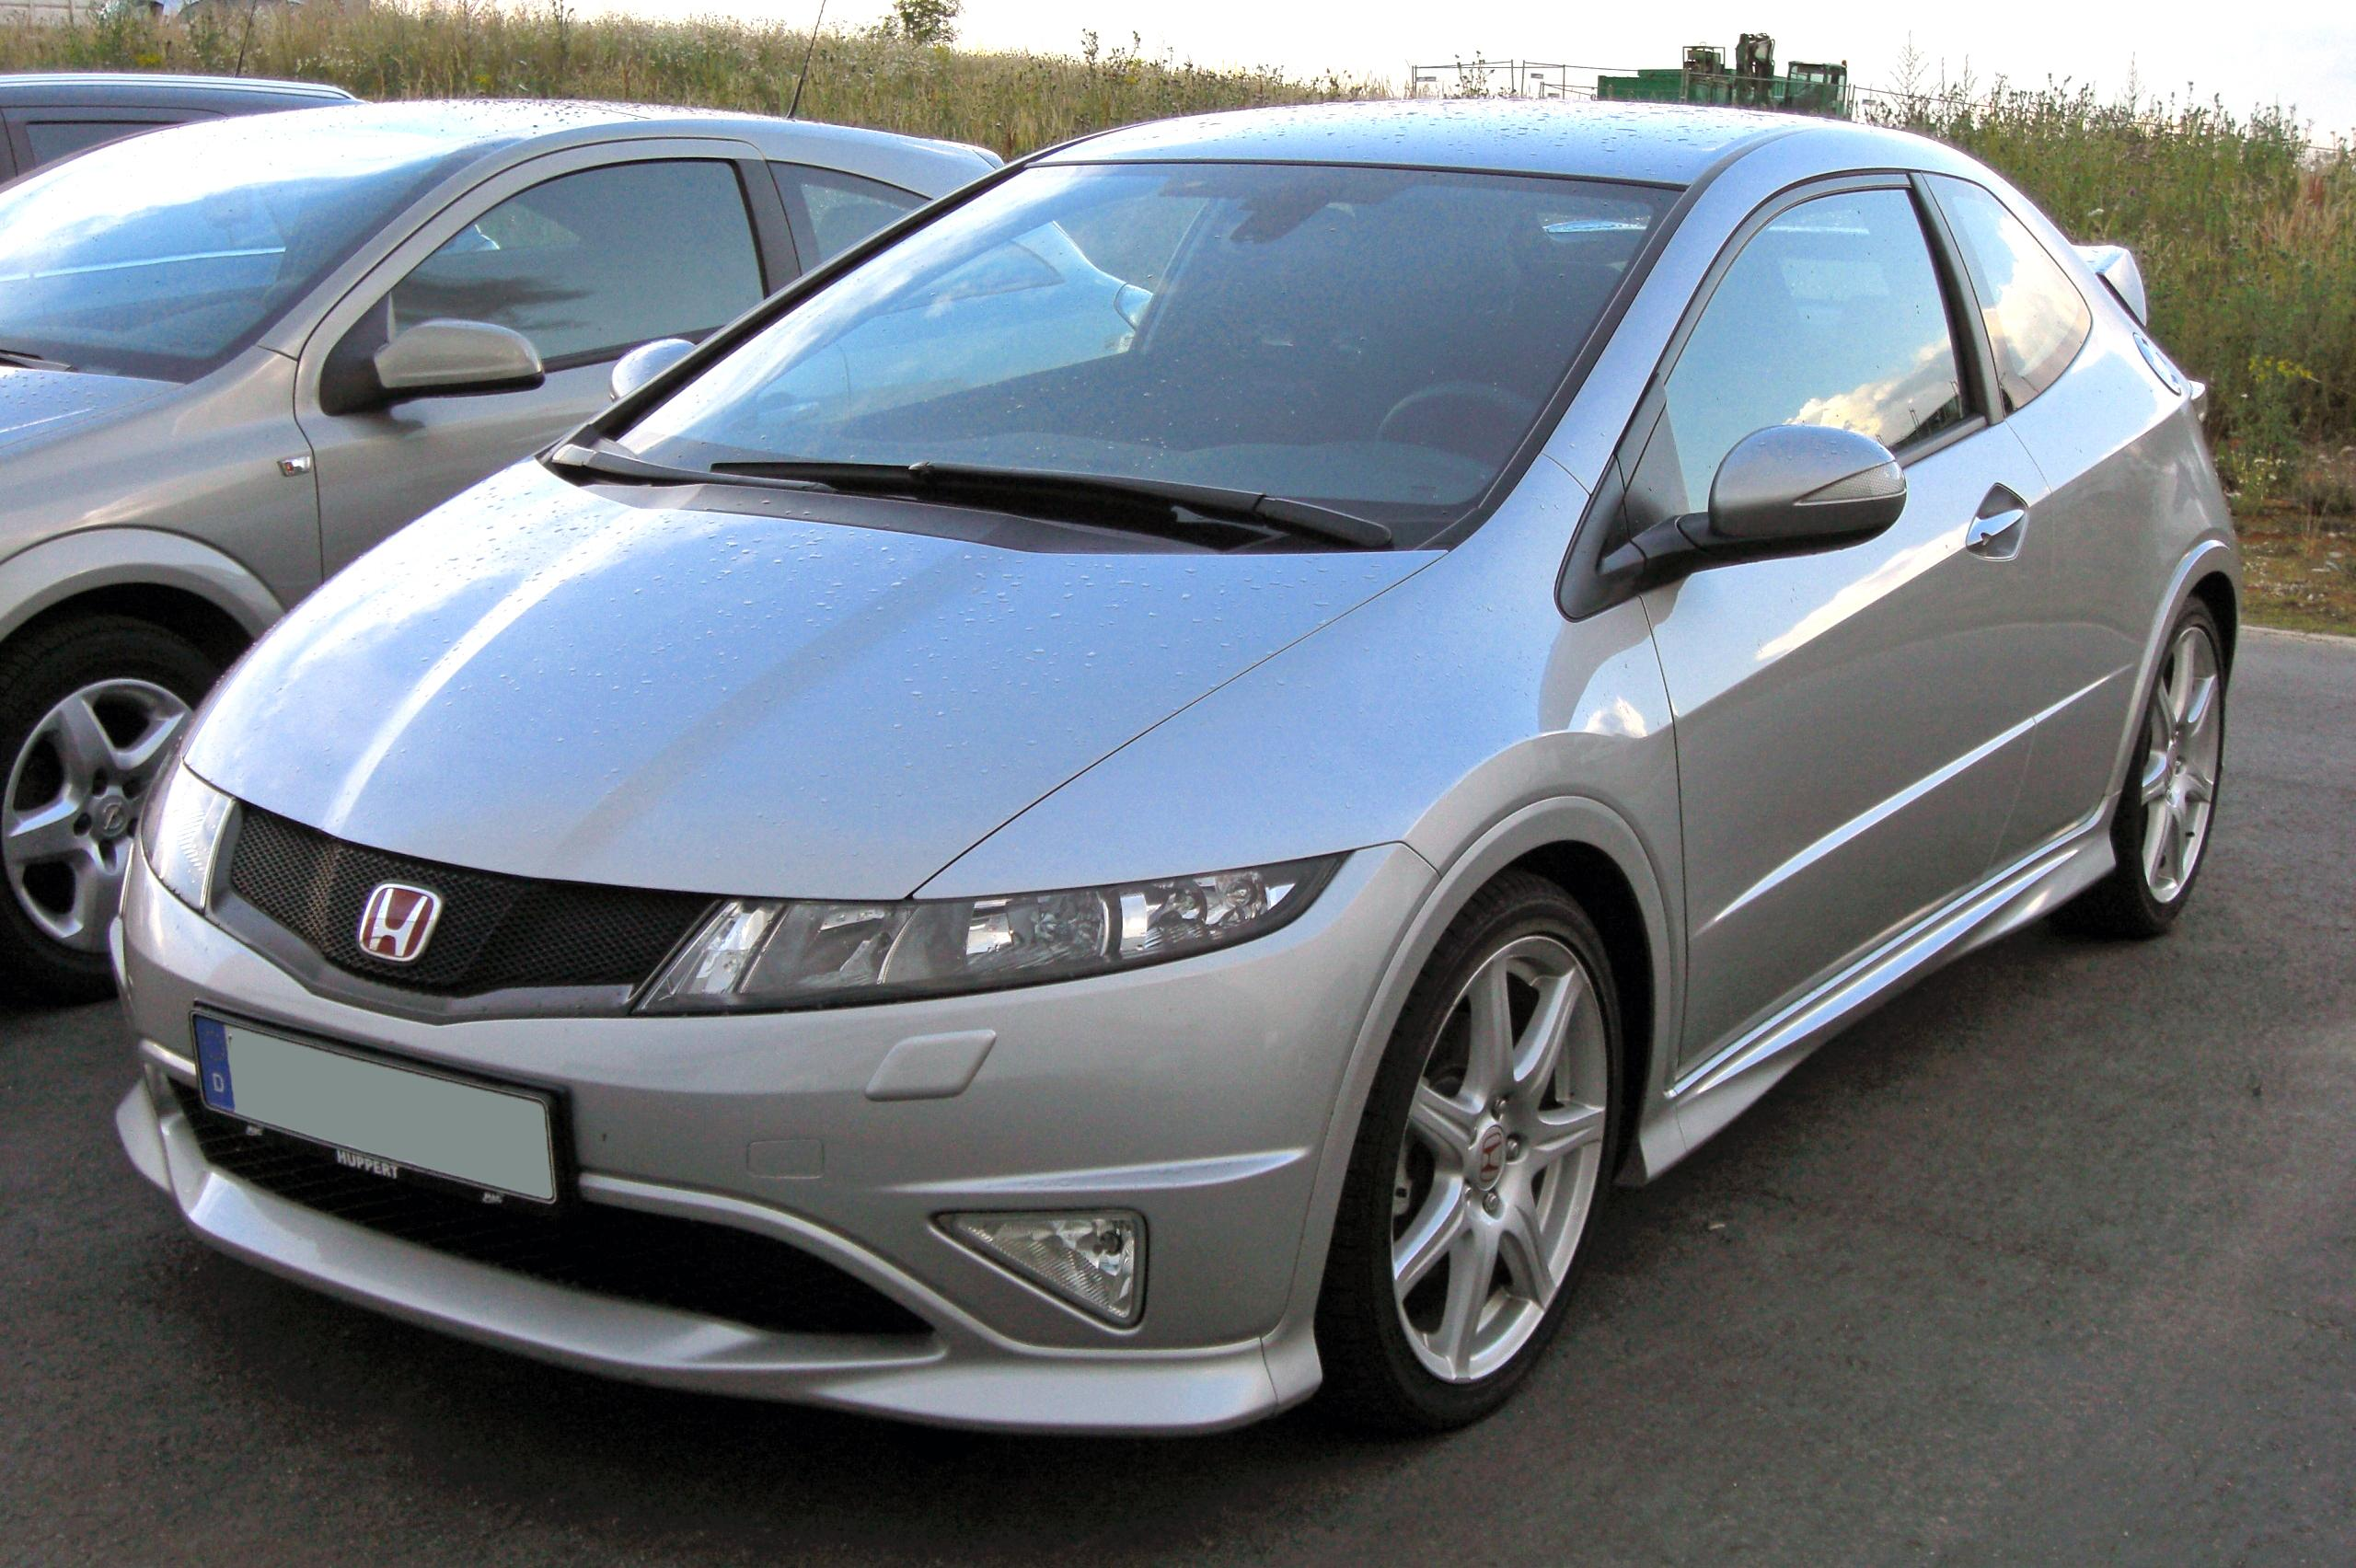 File:Honda Civic VIII Type R 20090706 Front.JPG